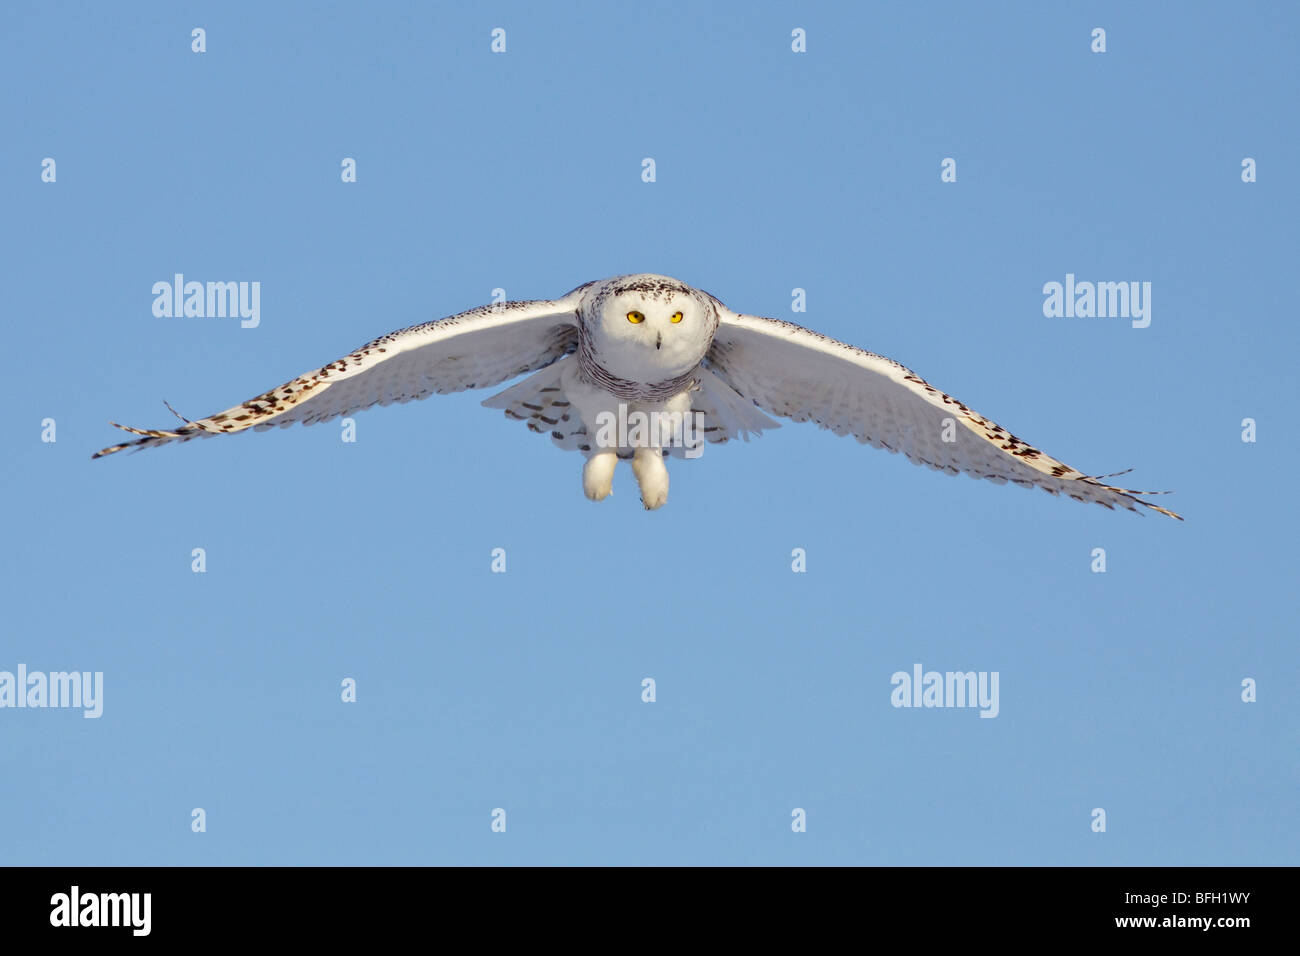 A young female snowy owl (Bubo scandiacus) hunting for rodents near Ottawa, Ontario, Canada. - Stock Image